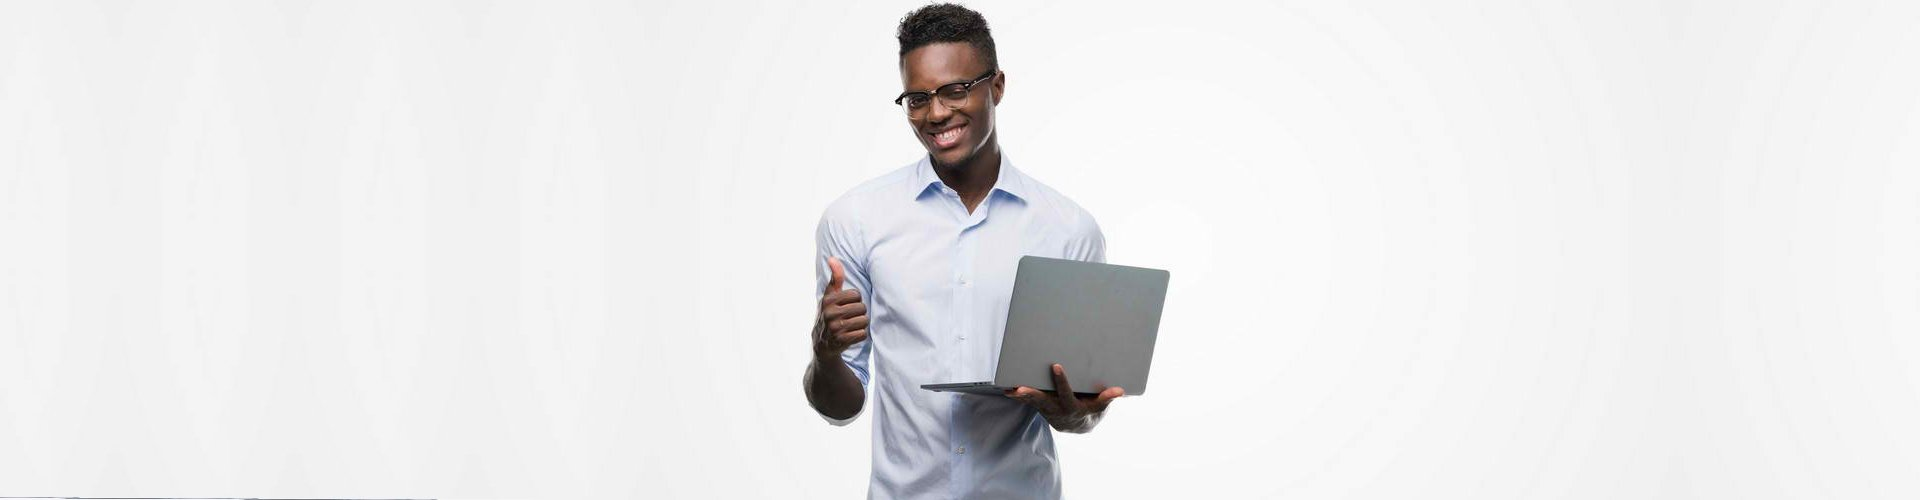 a man holding a laptop smiling